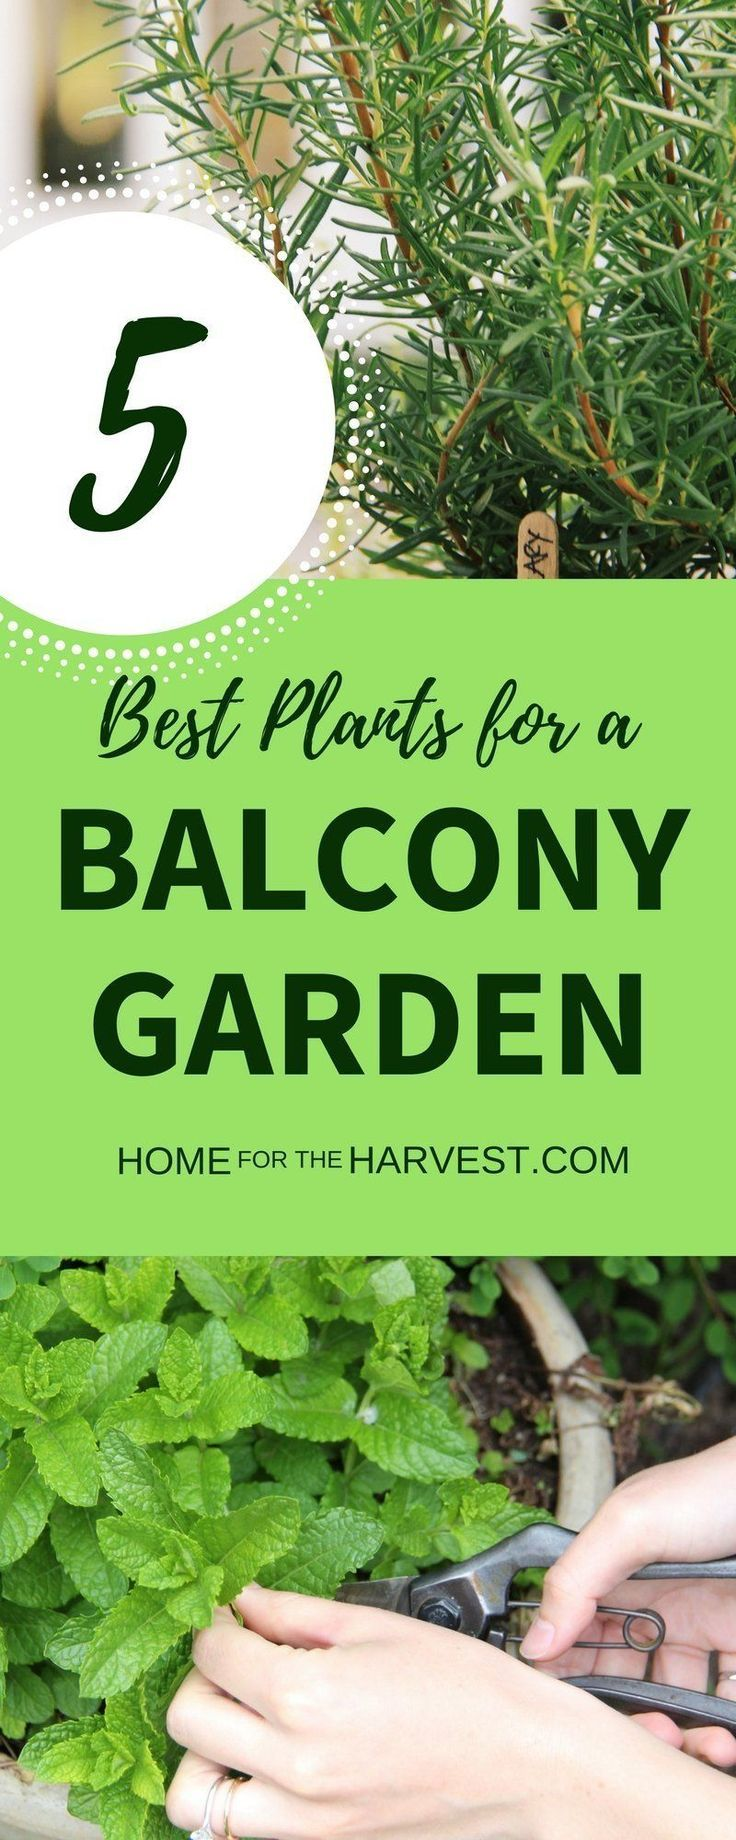 Photo of The Top 5 Plants for An Apartment Balcony Vegetable Garden   Balcony plants, Balcony garden, Apartme